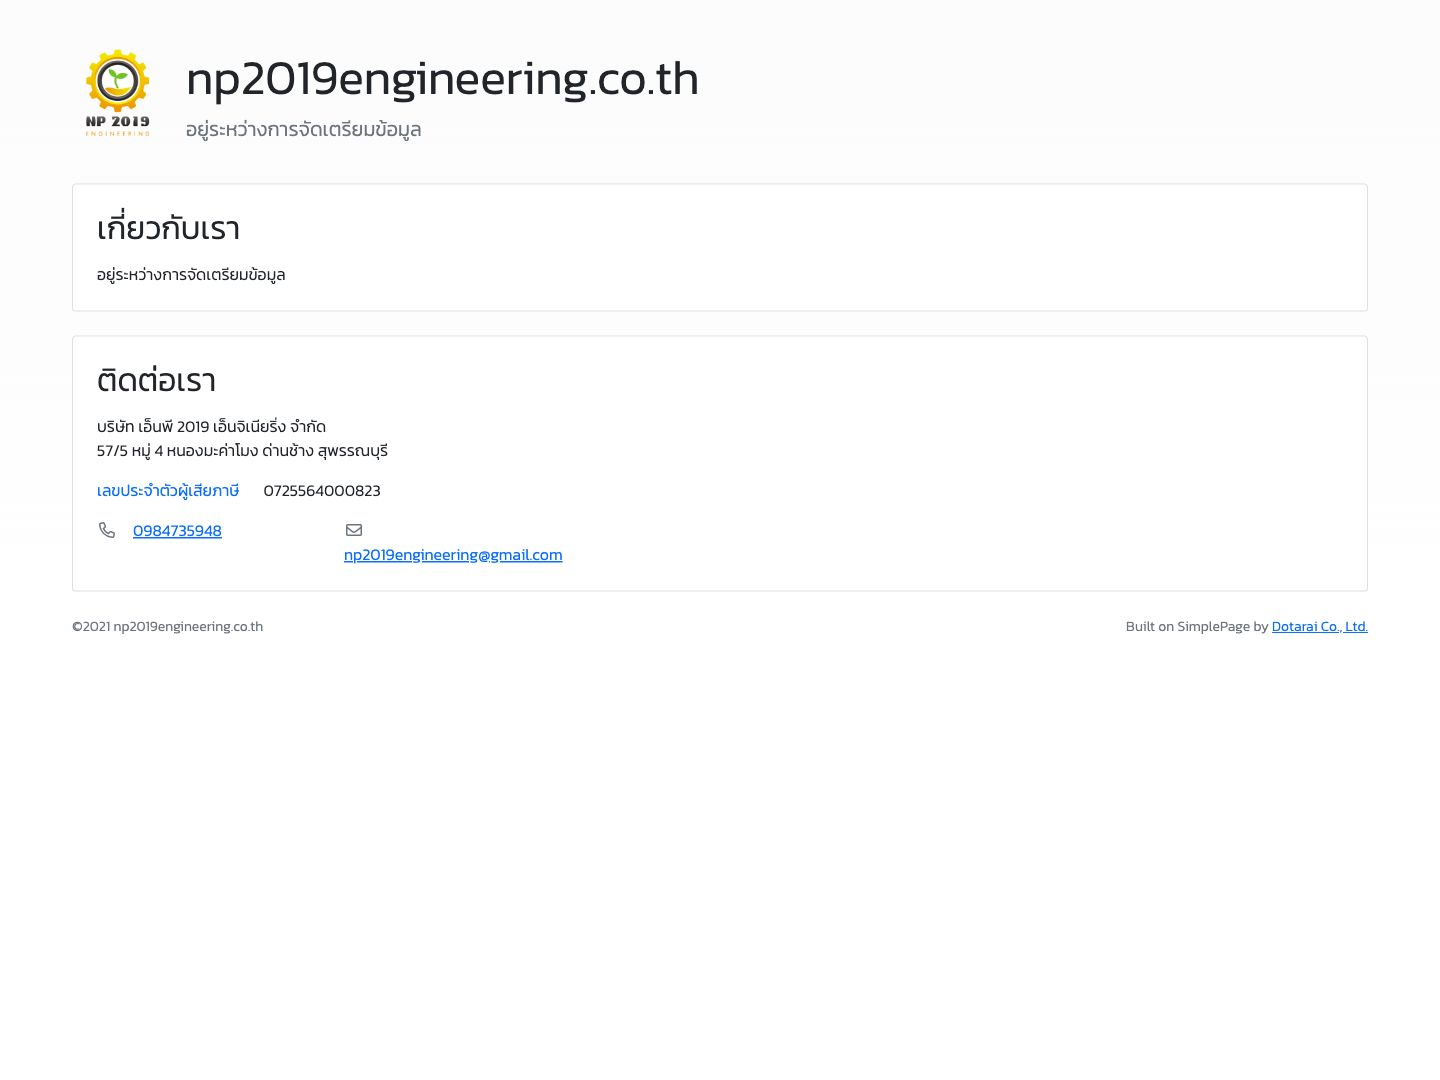 np2019engineering.co.th